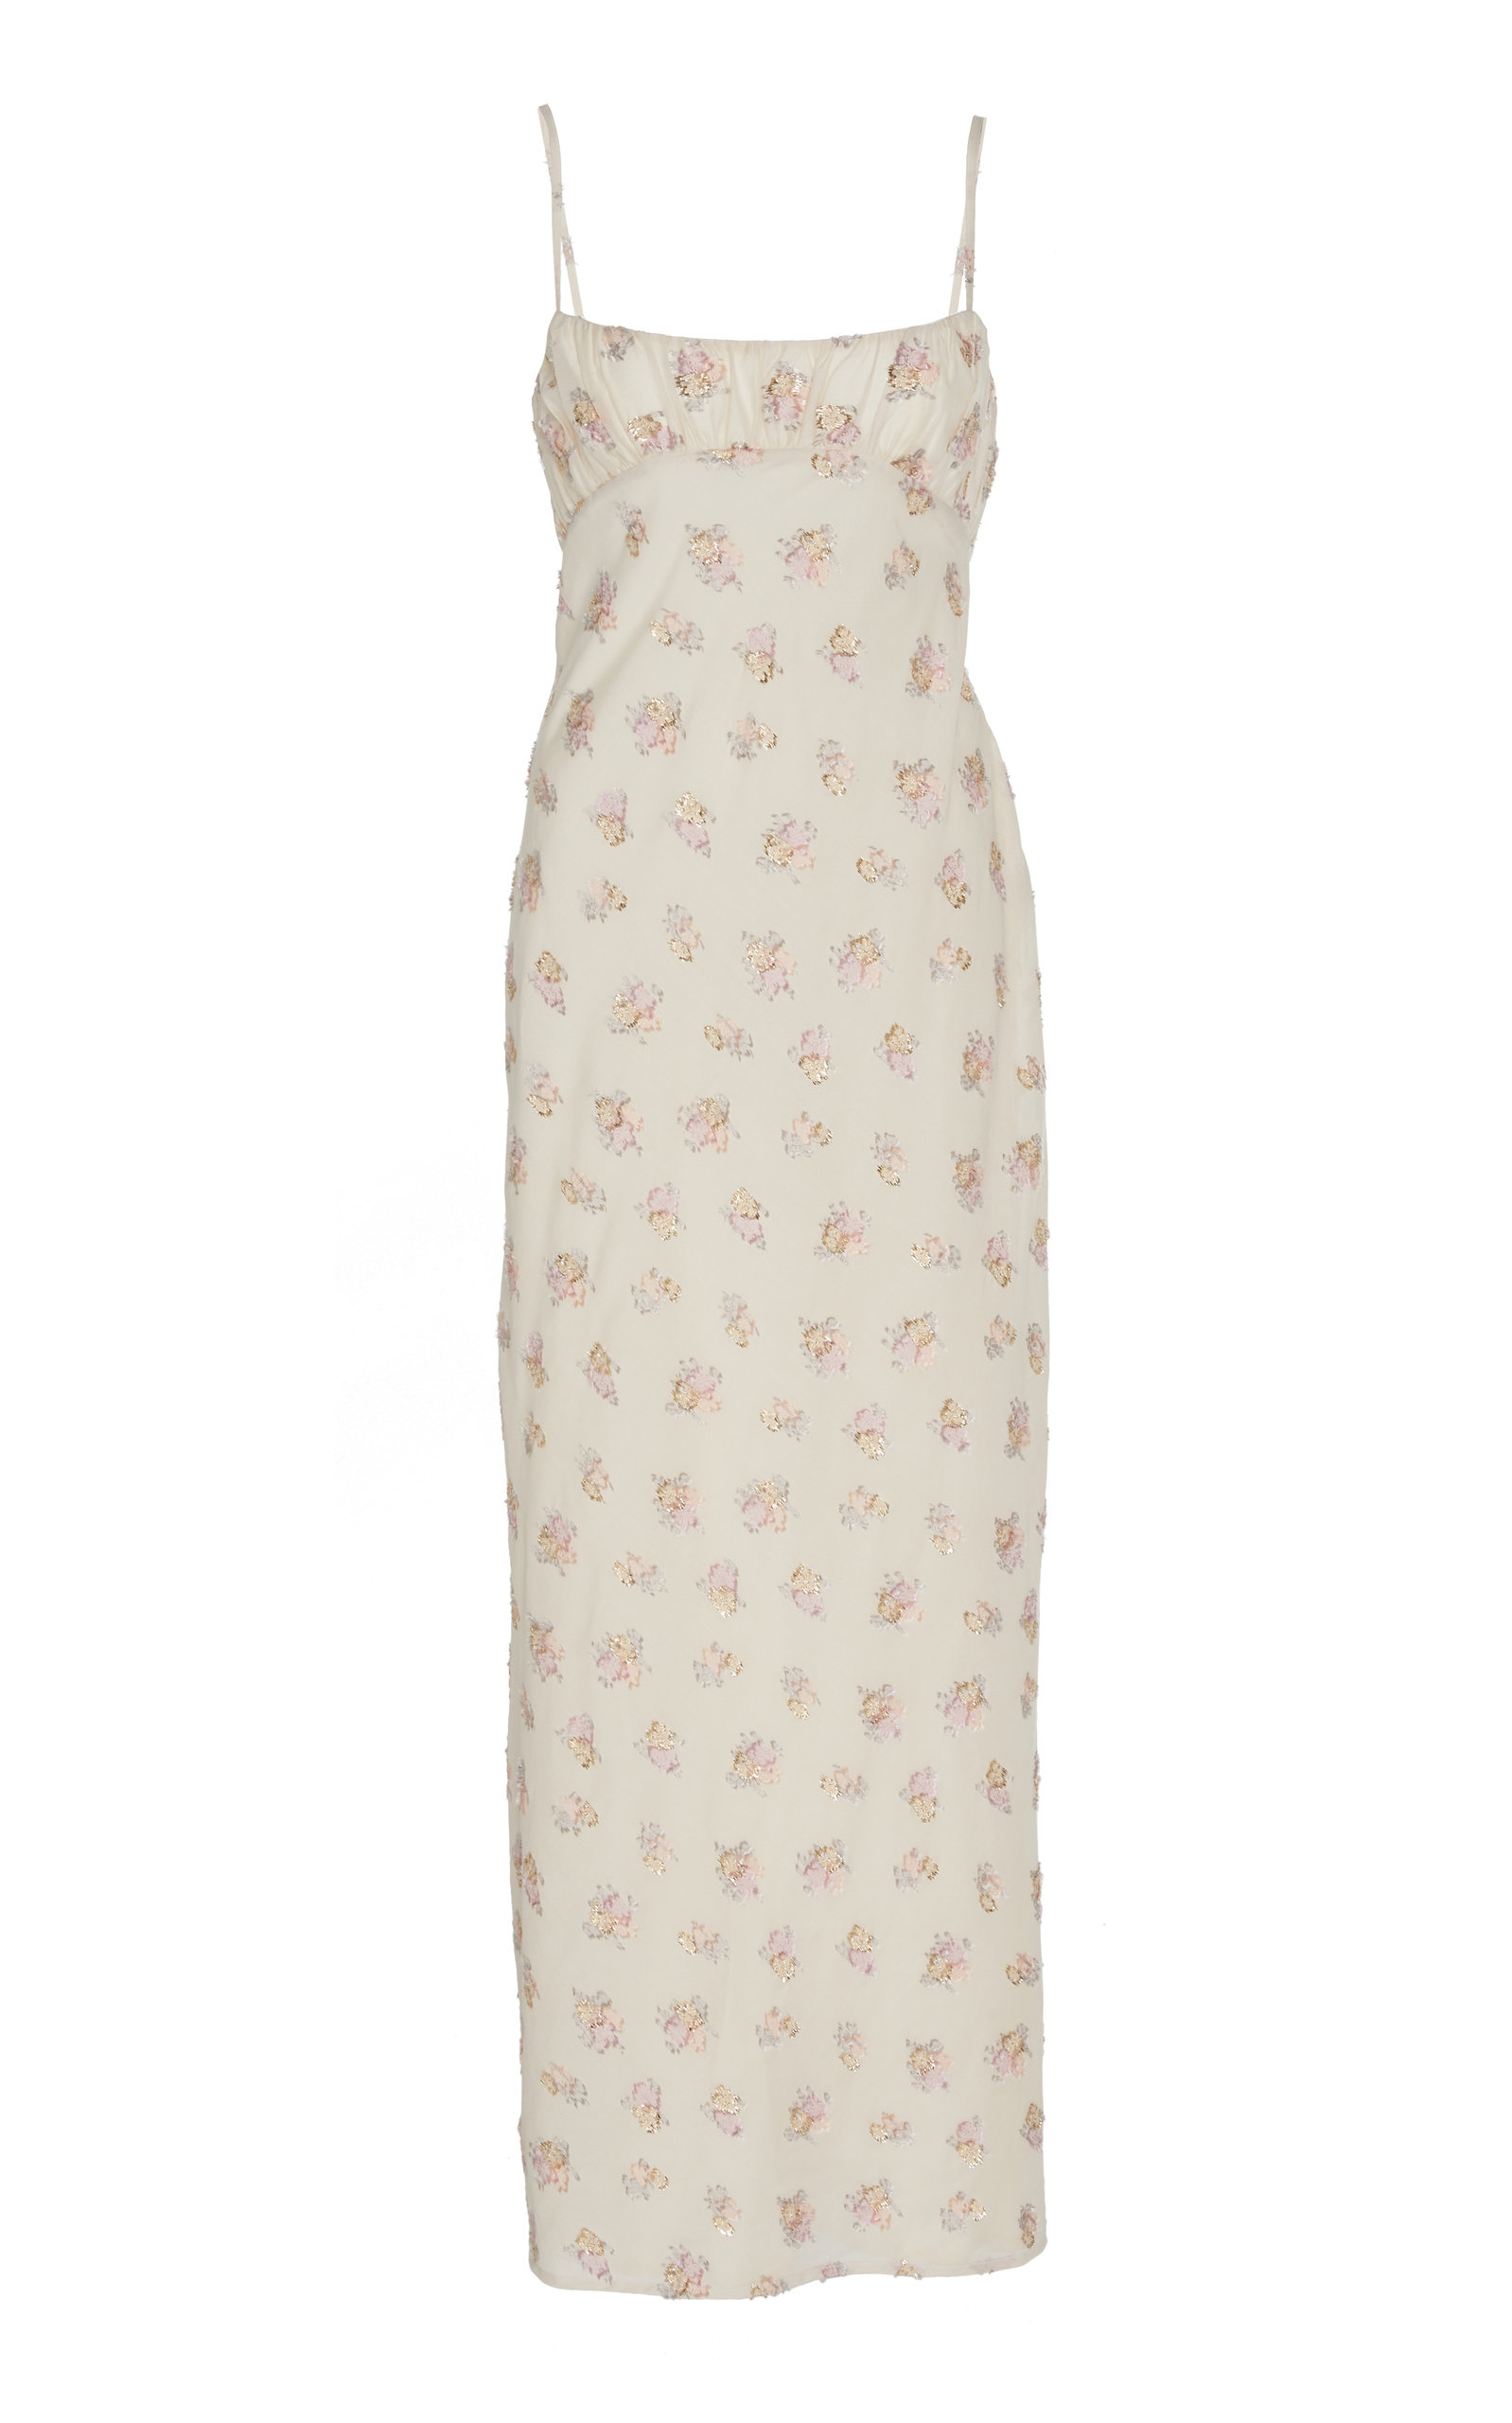 Buy Maggie Marilyn Dressed In Best Floral-Embroidered Cotton-Blend Midi Dr online, shop Maggie Marilyn at the best price